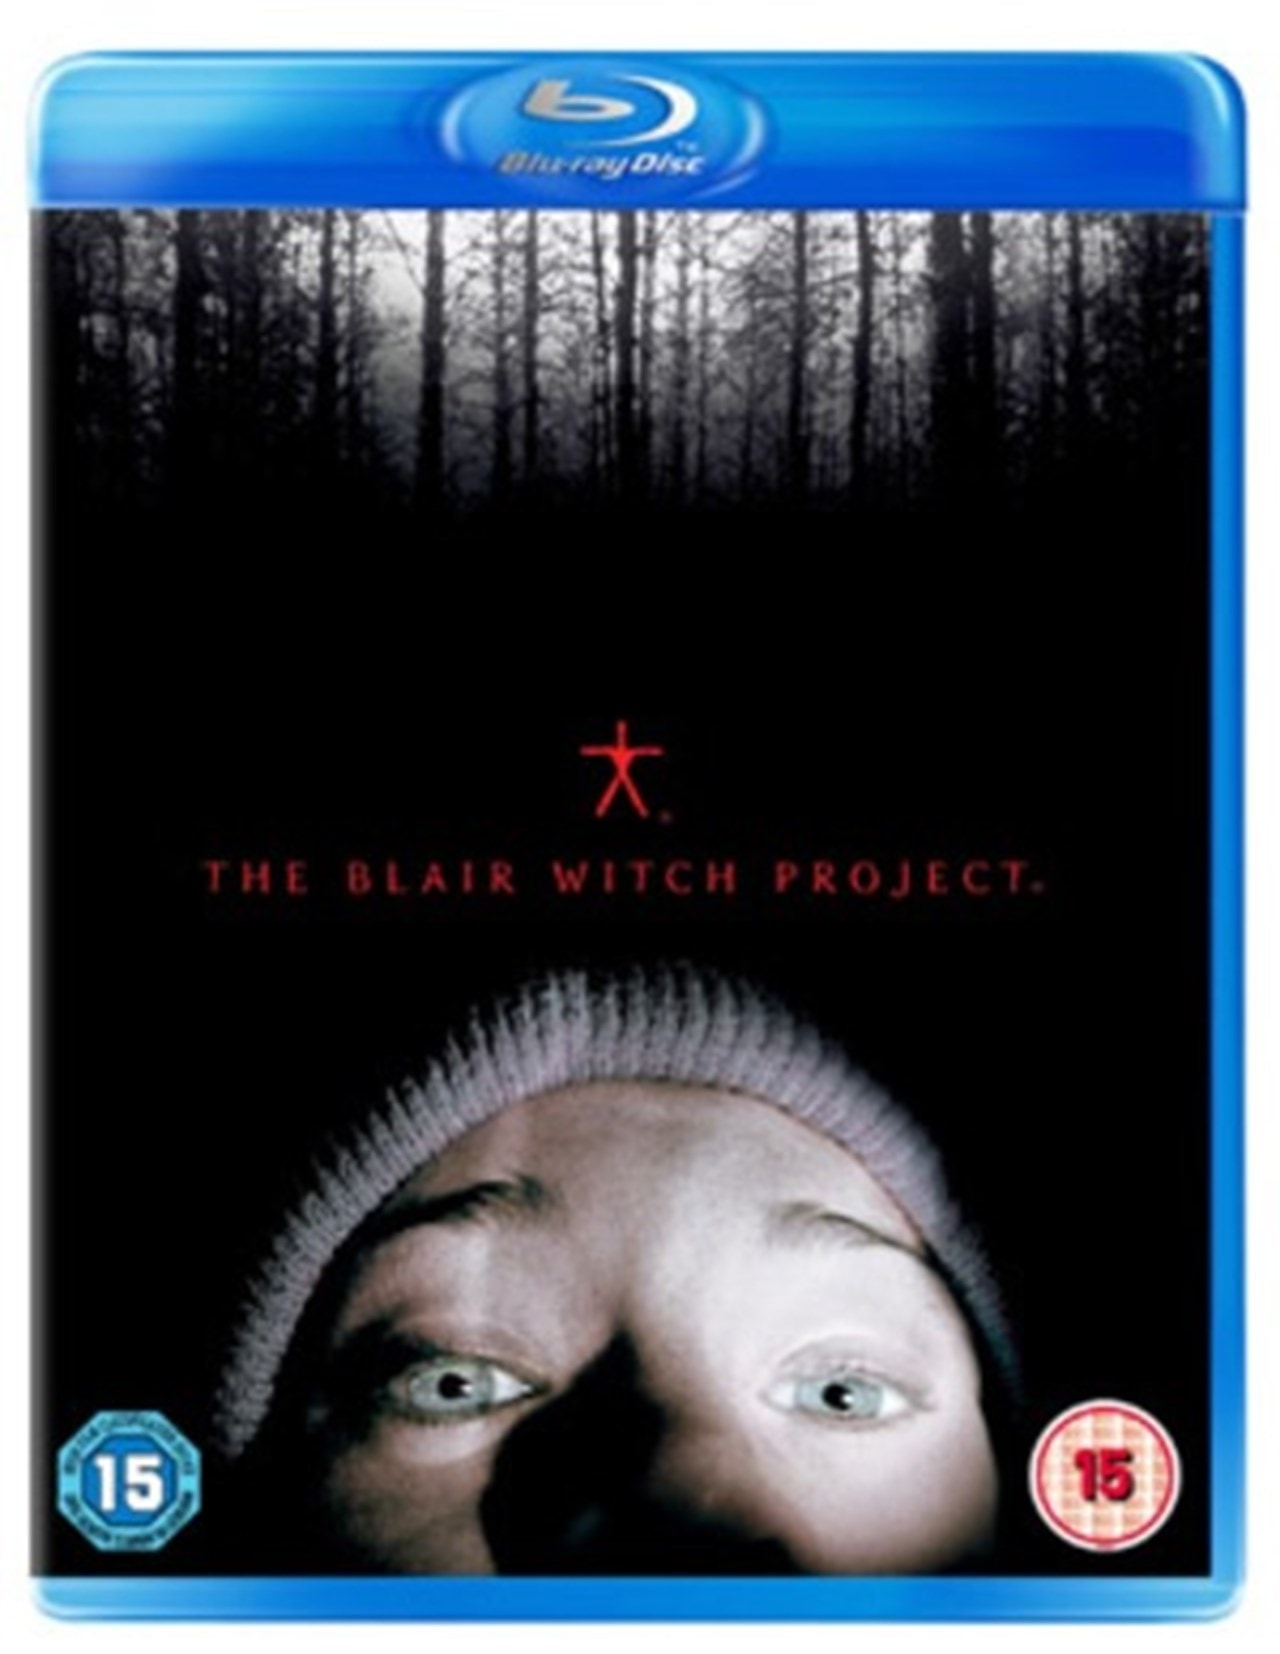 The Blair Witch Project - 1